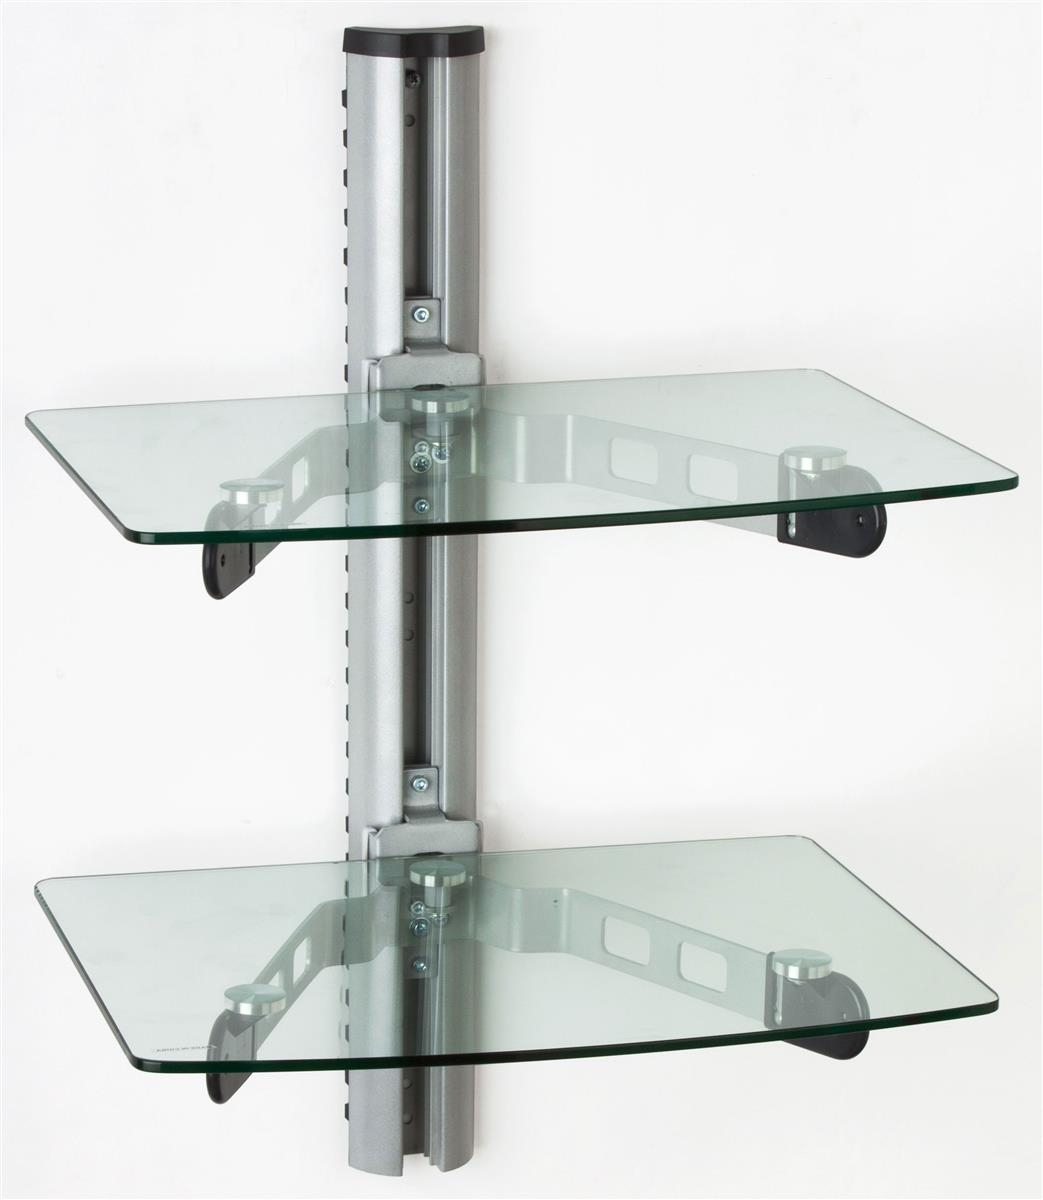 Wall Mounted Glass Shelves Av Component Stand Pertaining To Wall Mounted Black Glass Shelves (#13 of 15)